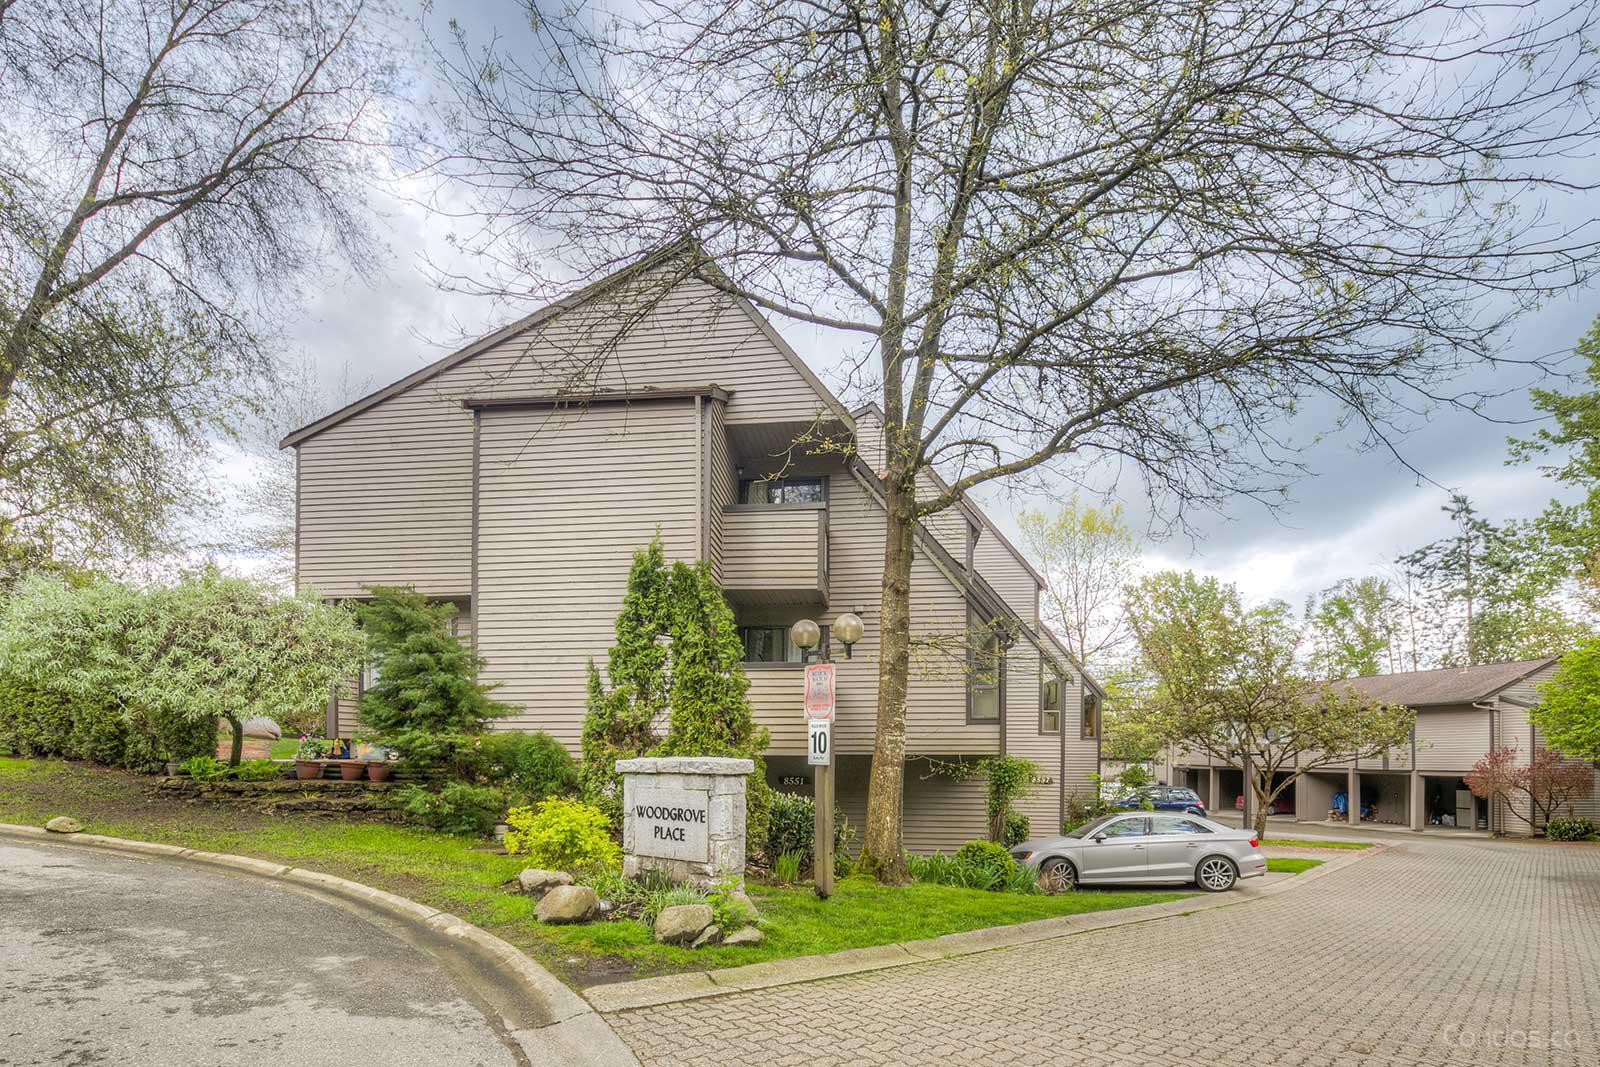 Simon Fraser Village - Woodgrove Place at 8570 Woodgrove Pl, Burnaby 1